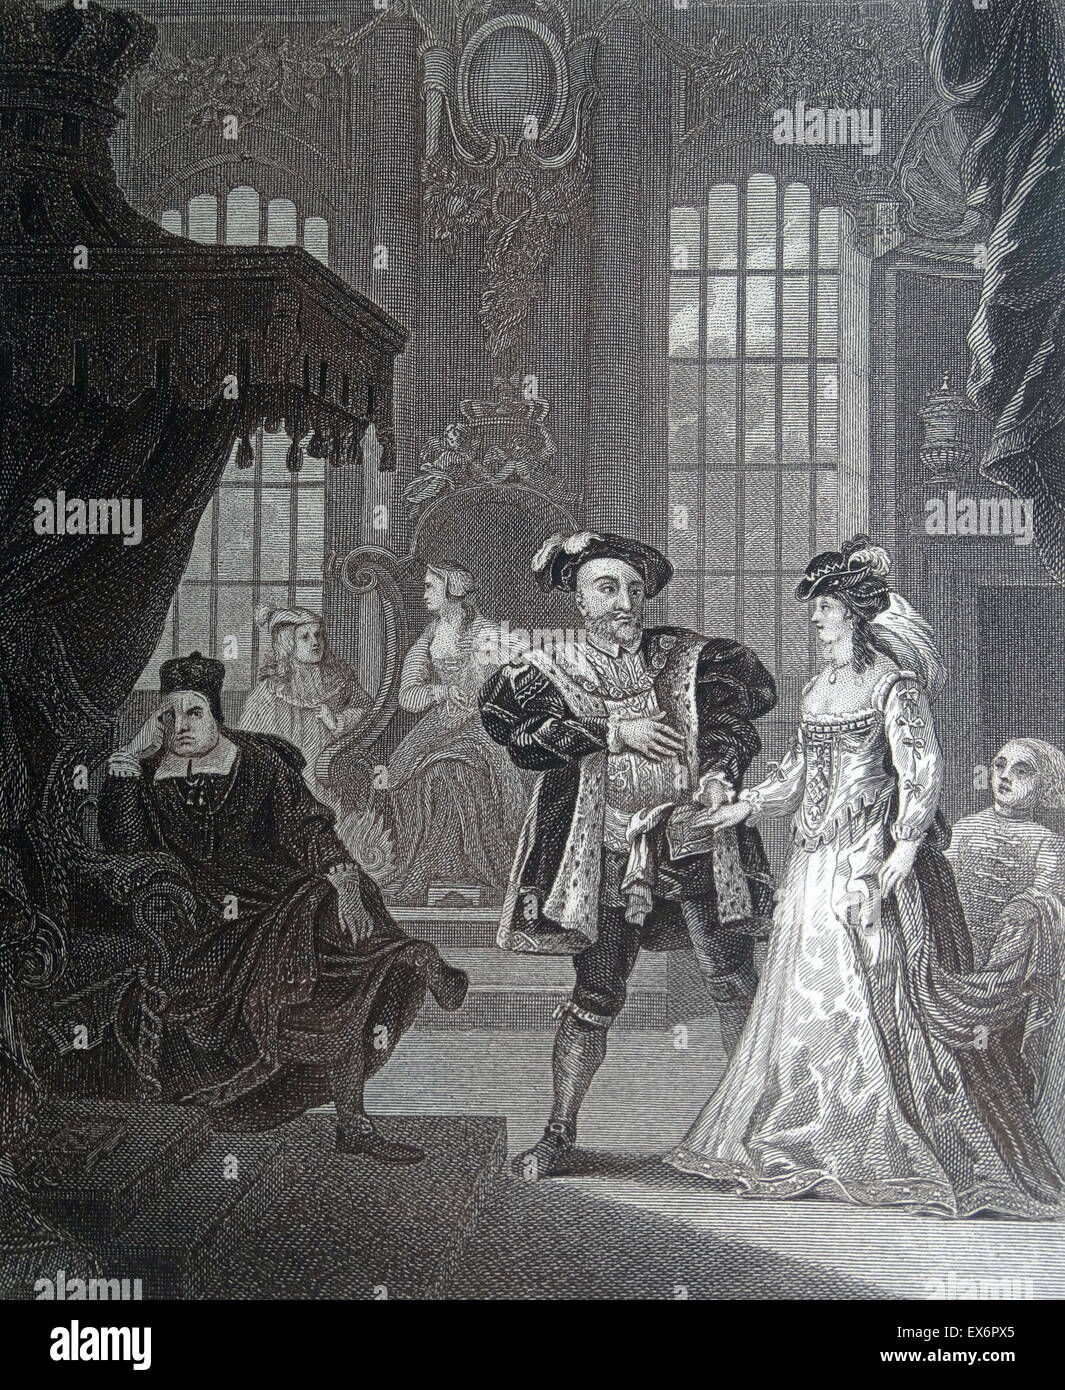 Engraving by British artist & engraver, William Hogarth 1697–1764: King Henry the Eighth & Anna Bullen (Anne Boleyn). Henry confesses the lady-in-waiting of his (1st) wife, Catherine of Aragon, this set back on the throne, his feelings. To the right the a Stock Photo